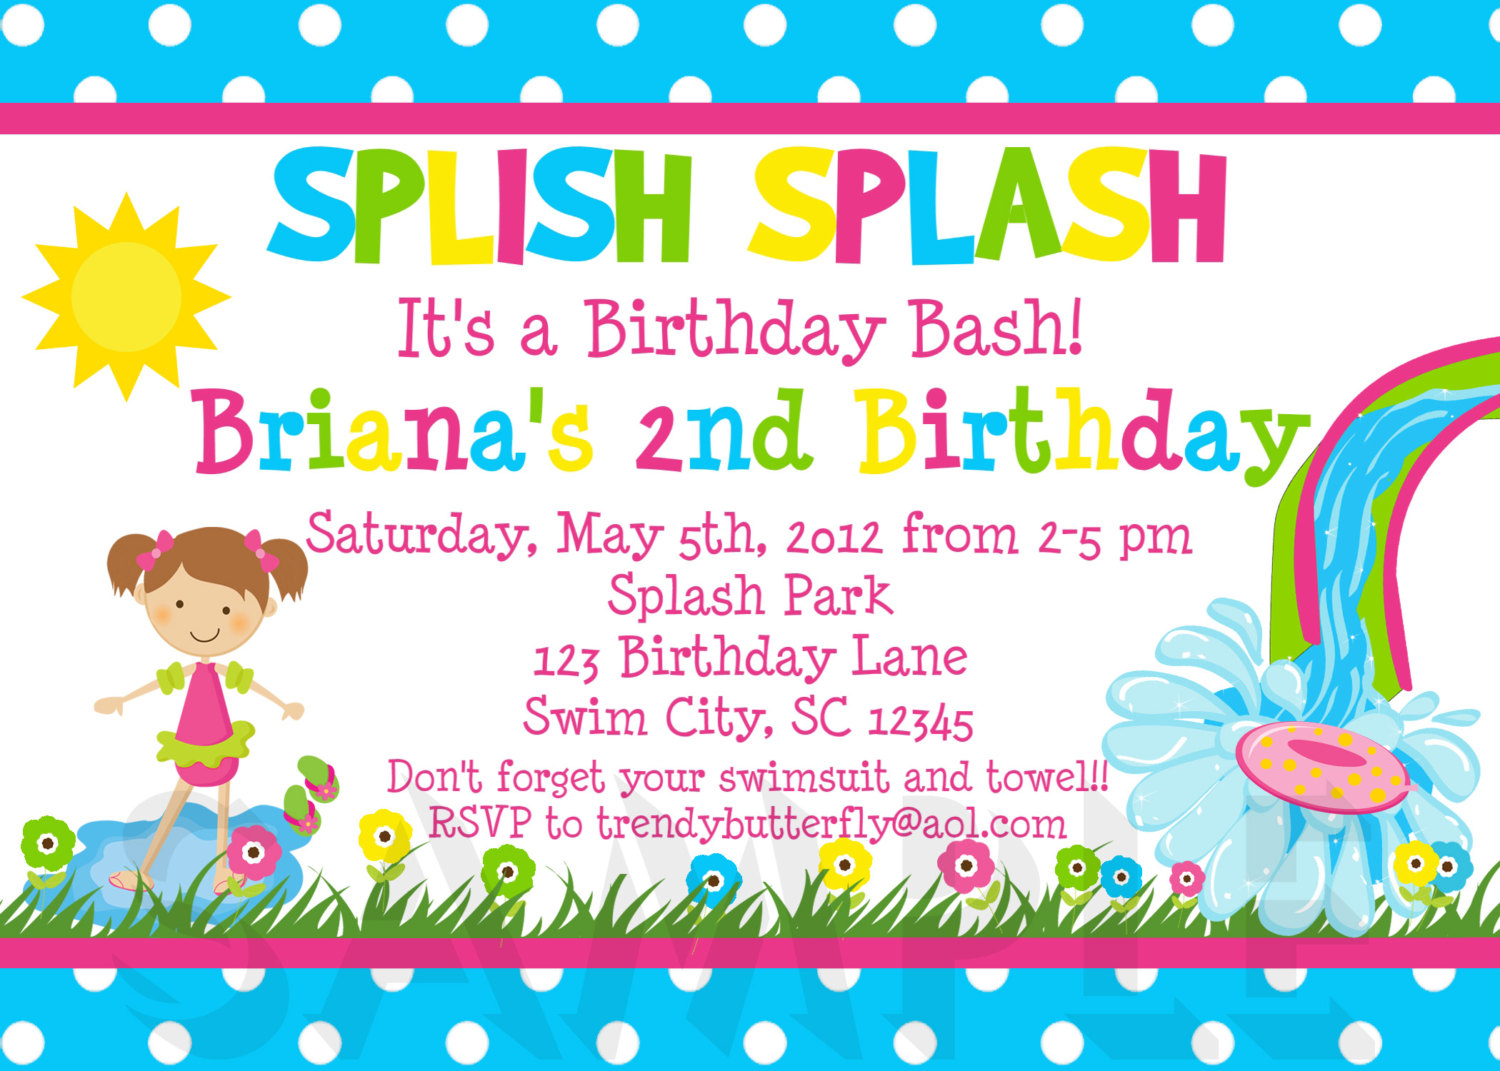 Free Printable Party Invitations For Kids Birthday Parties – Invitations Birthday Party Free Printable